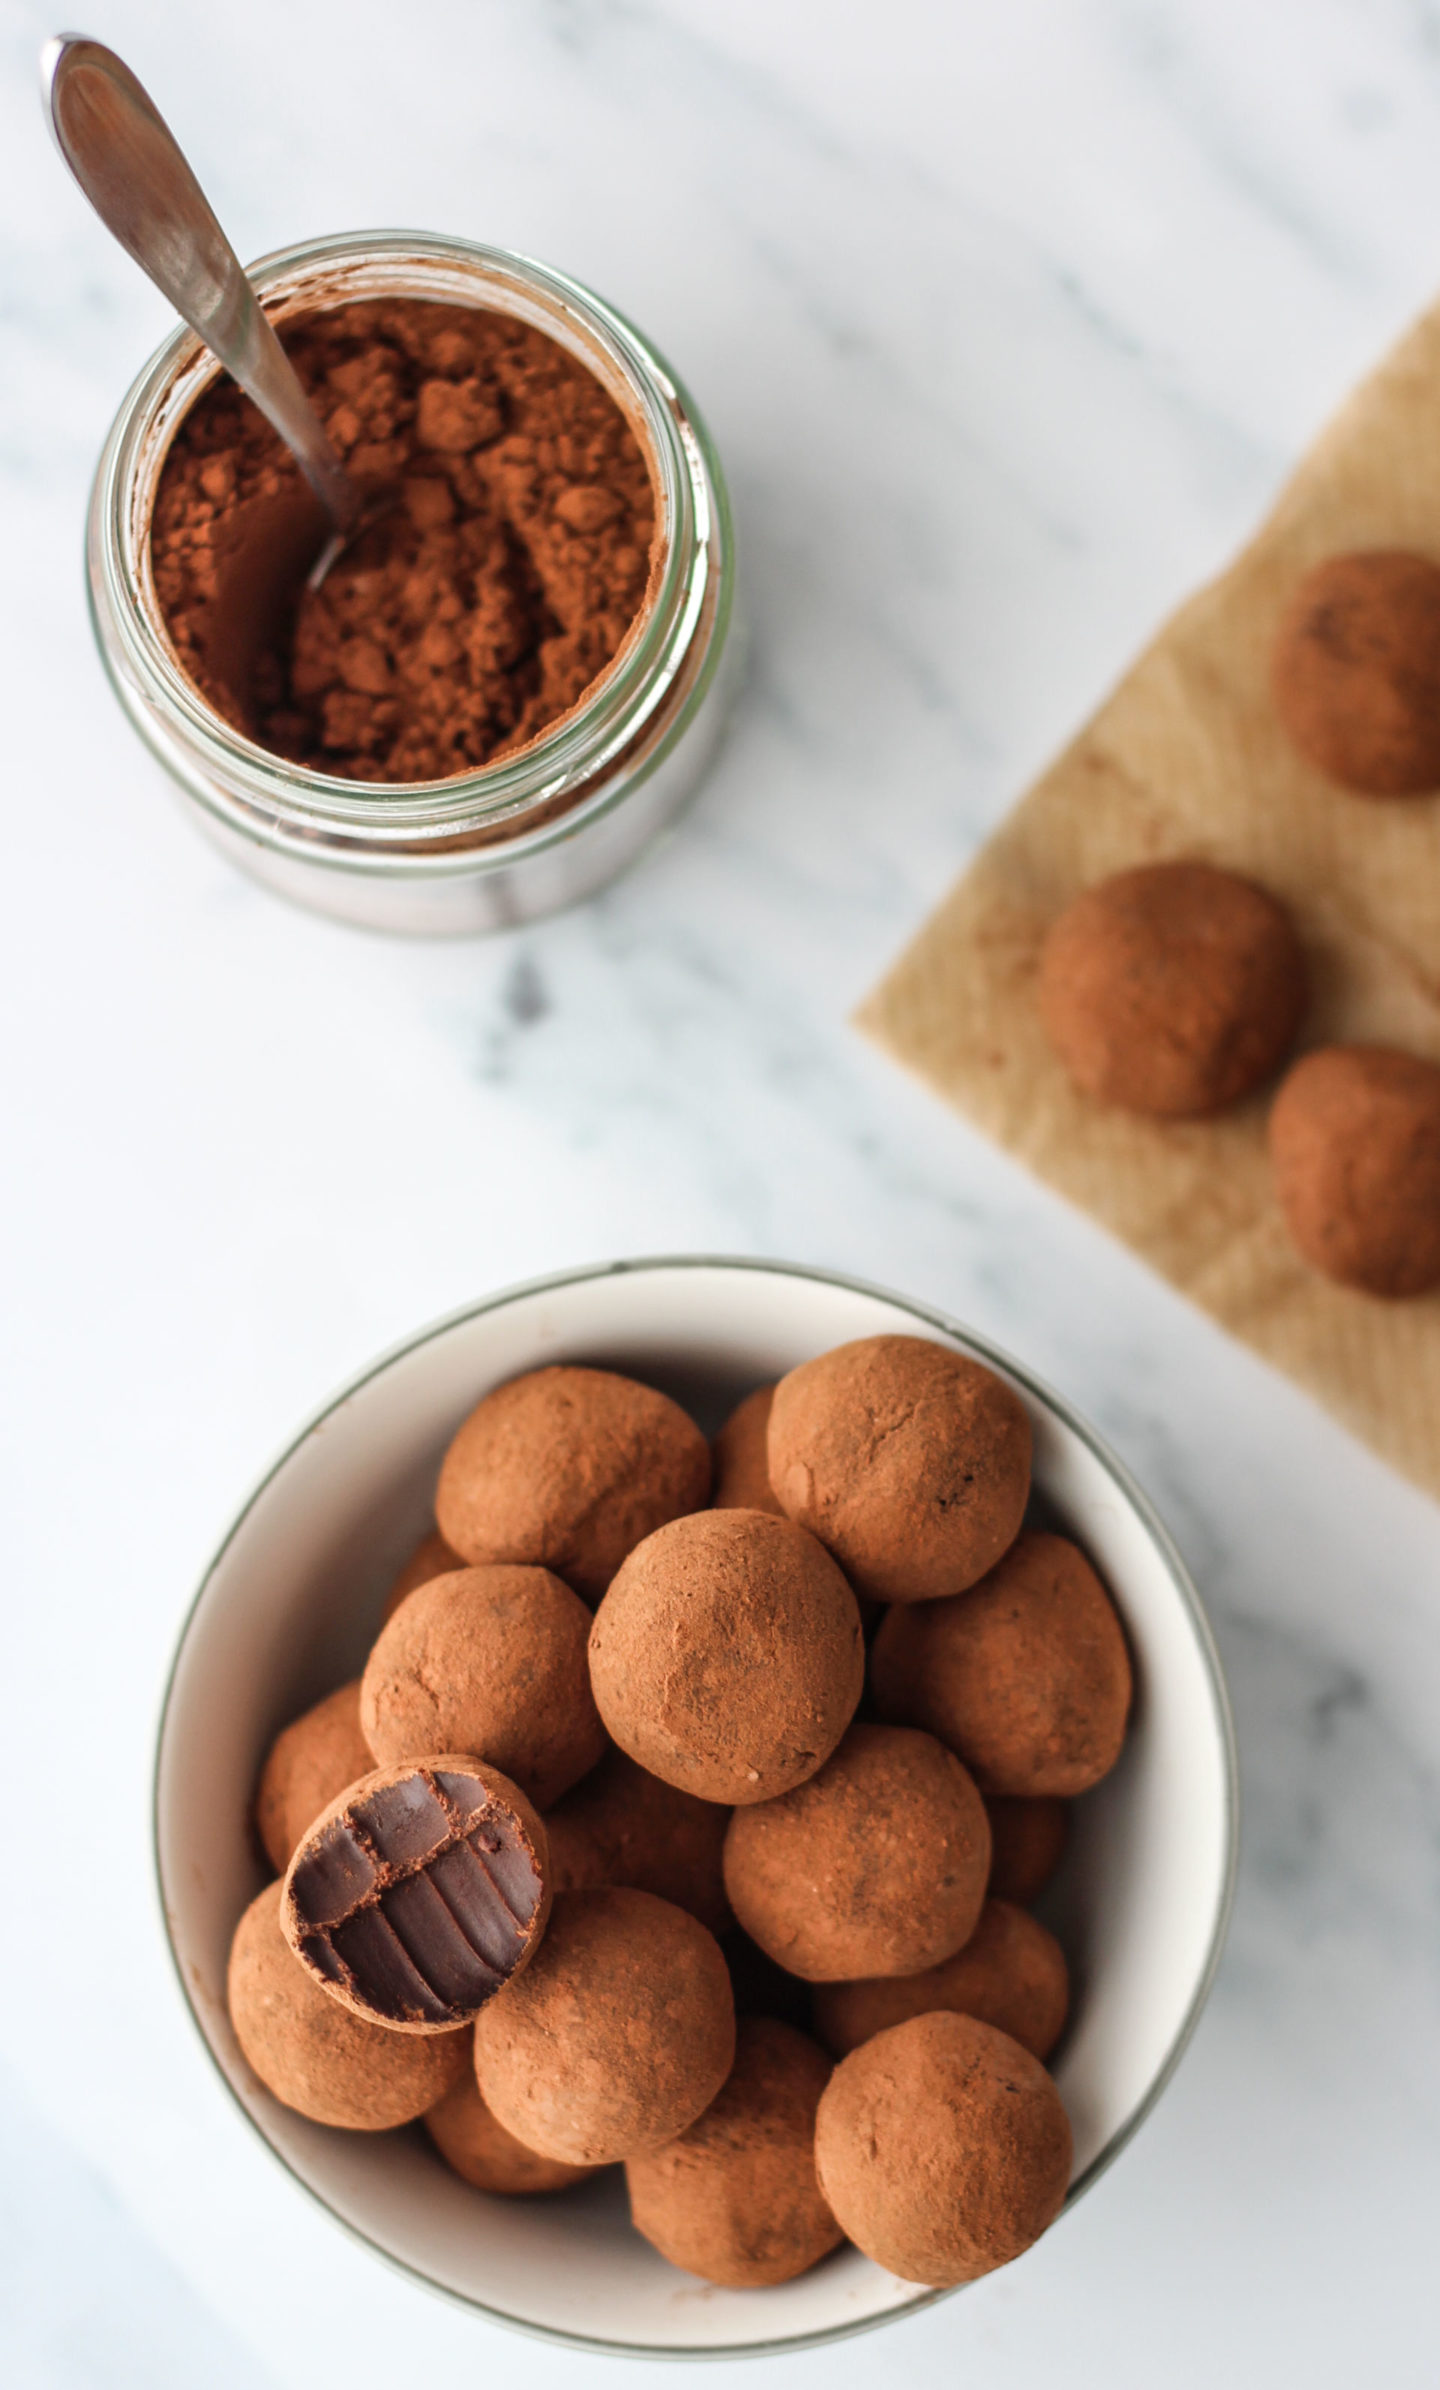 chocolate truffles in bowl and jar of cocoa powder